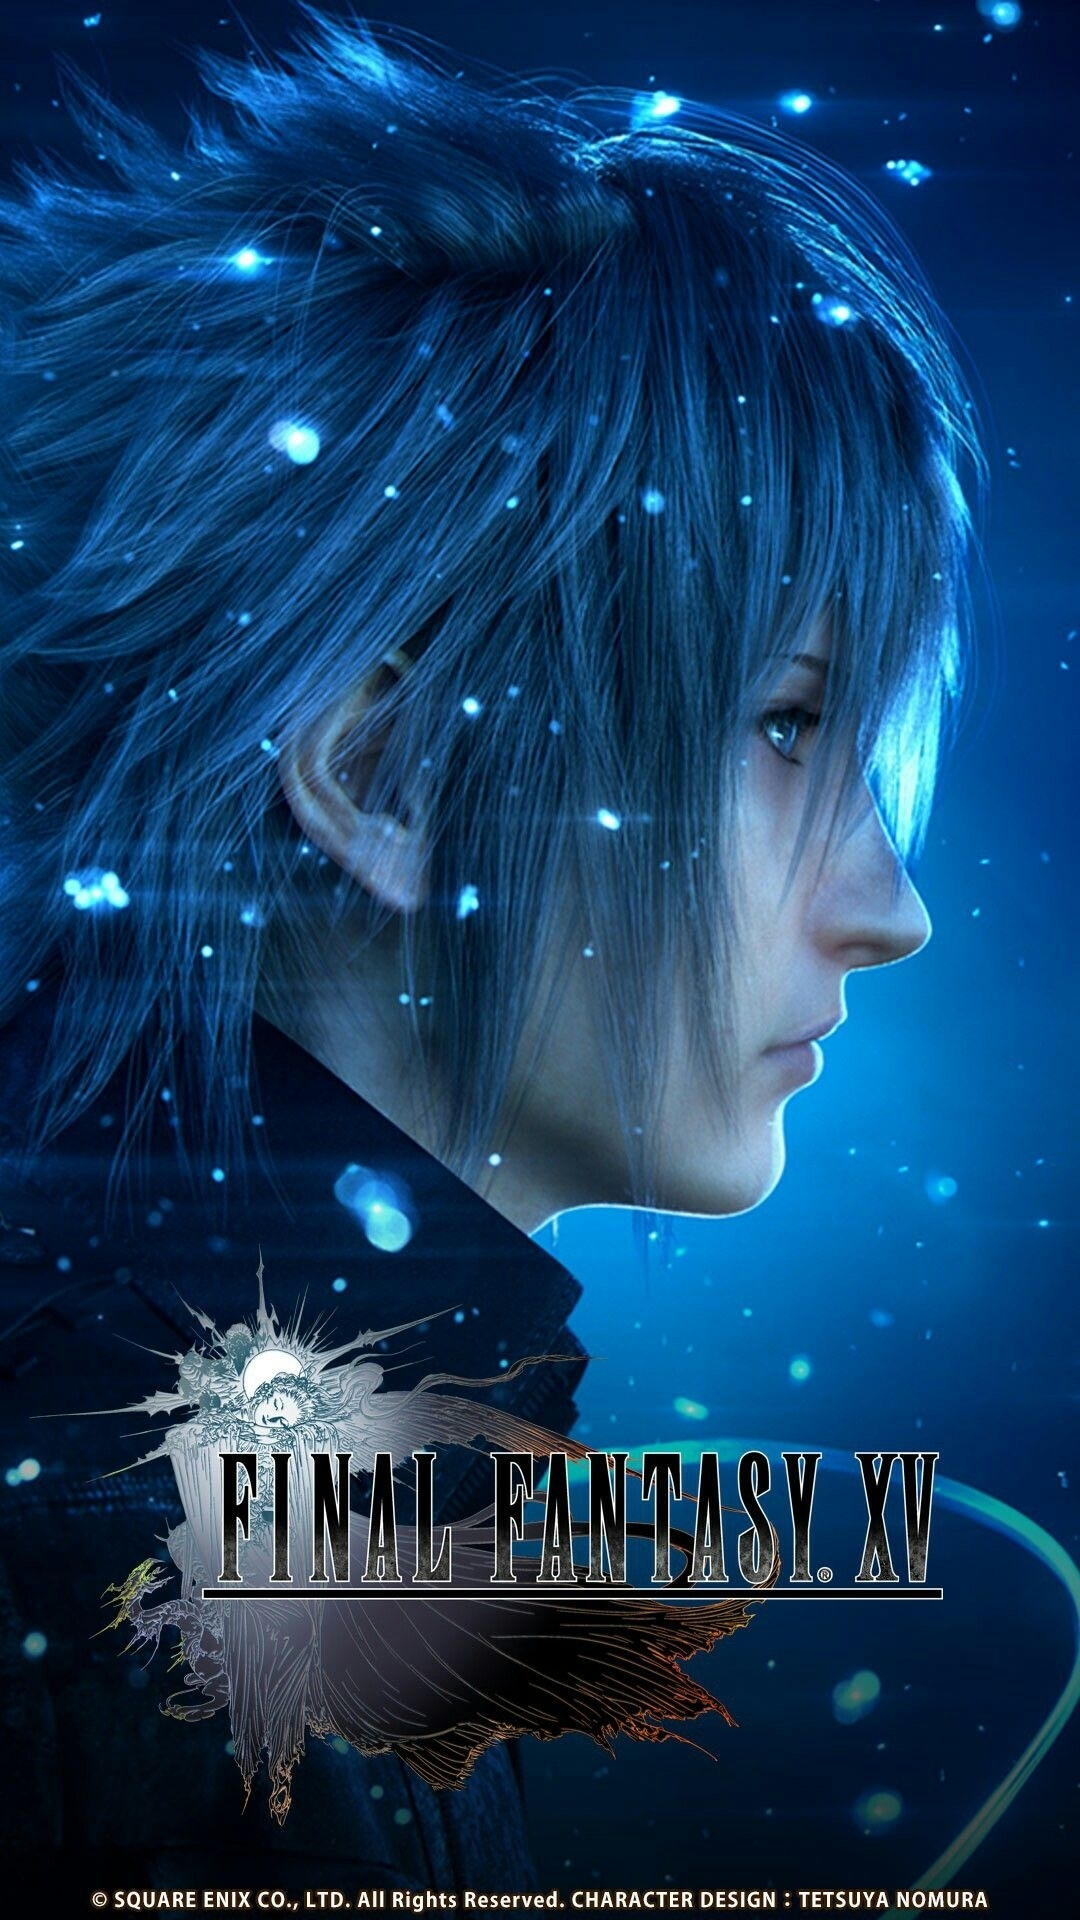 noctis | prince noctis l caelum and anything final fantasy